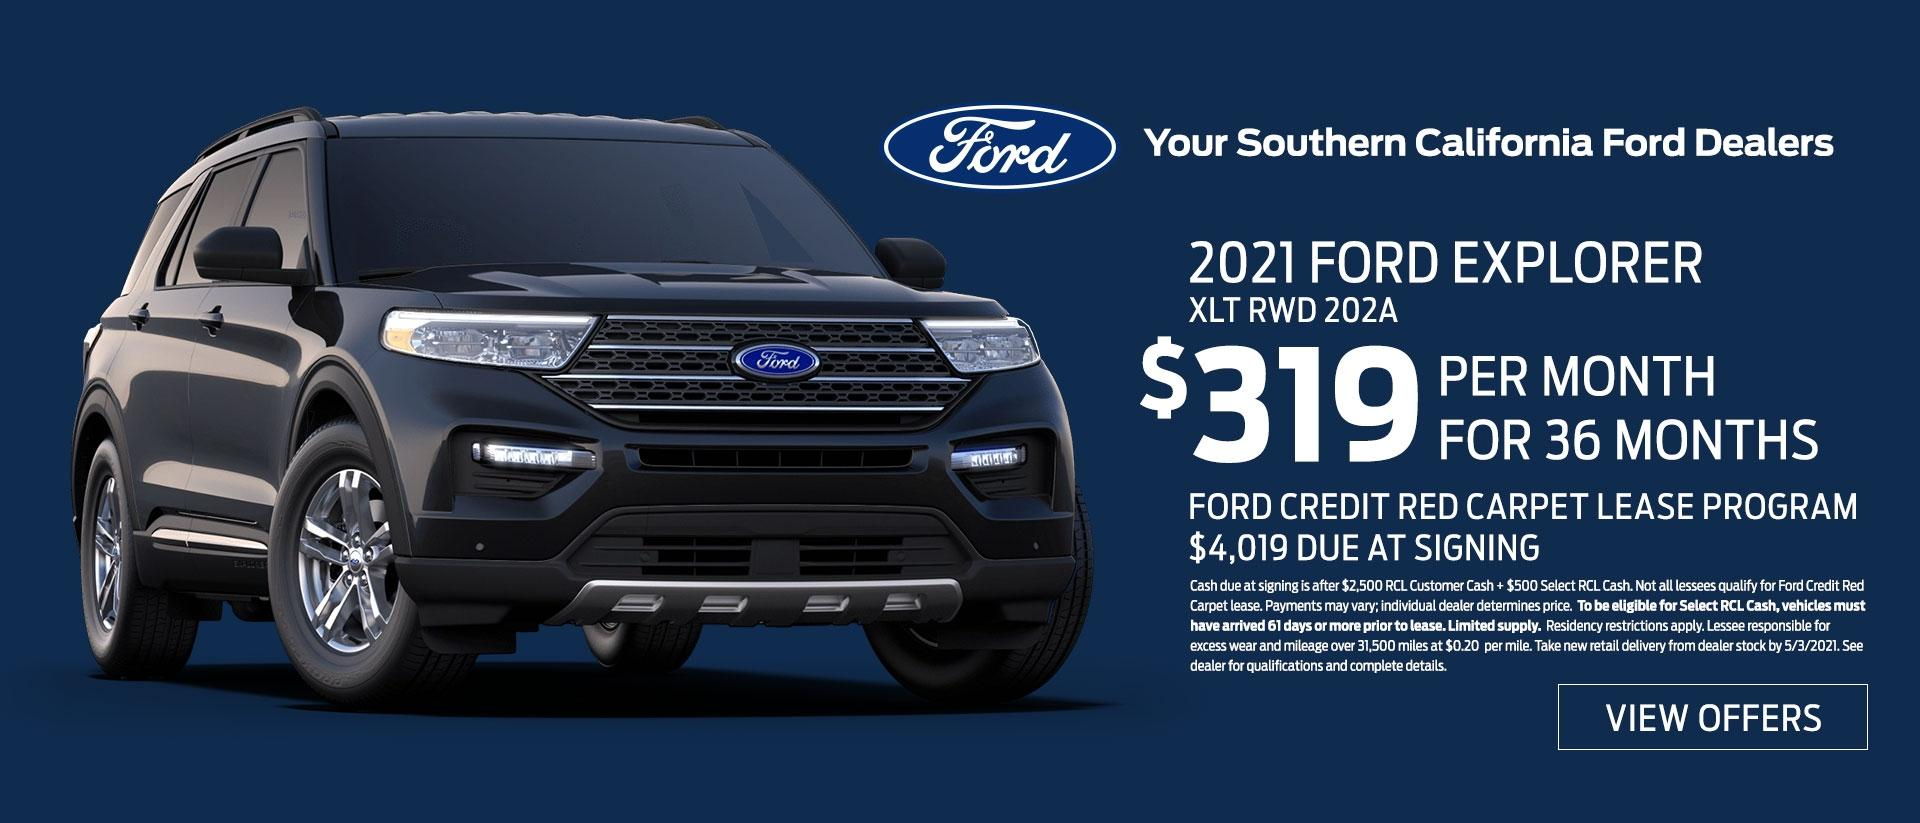 Ford Explorer Offer